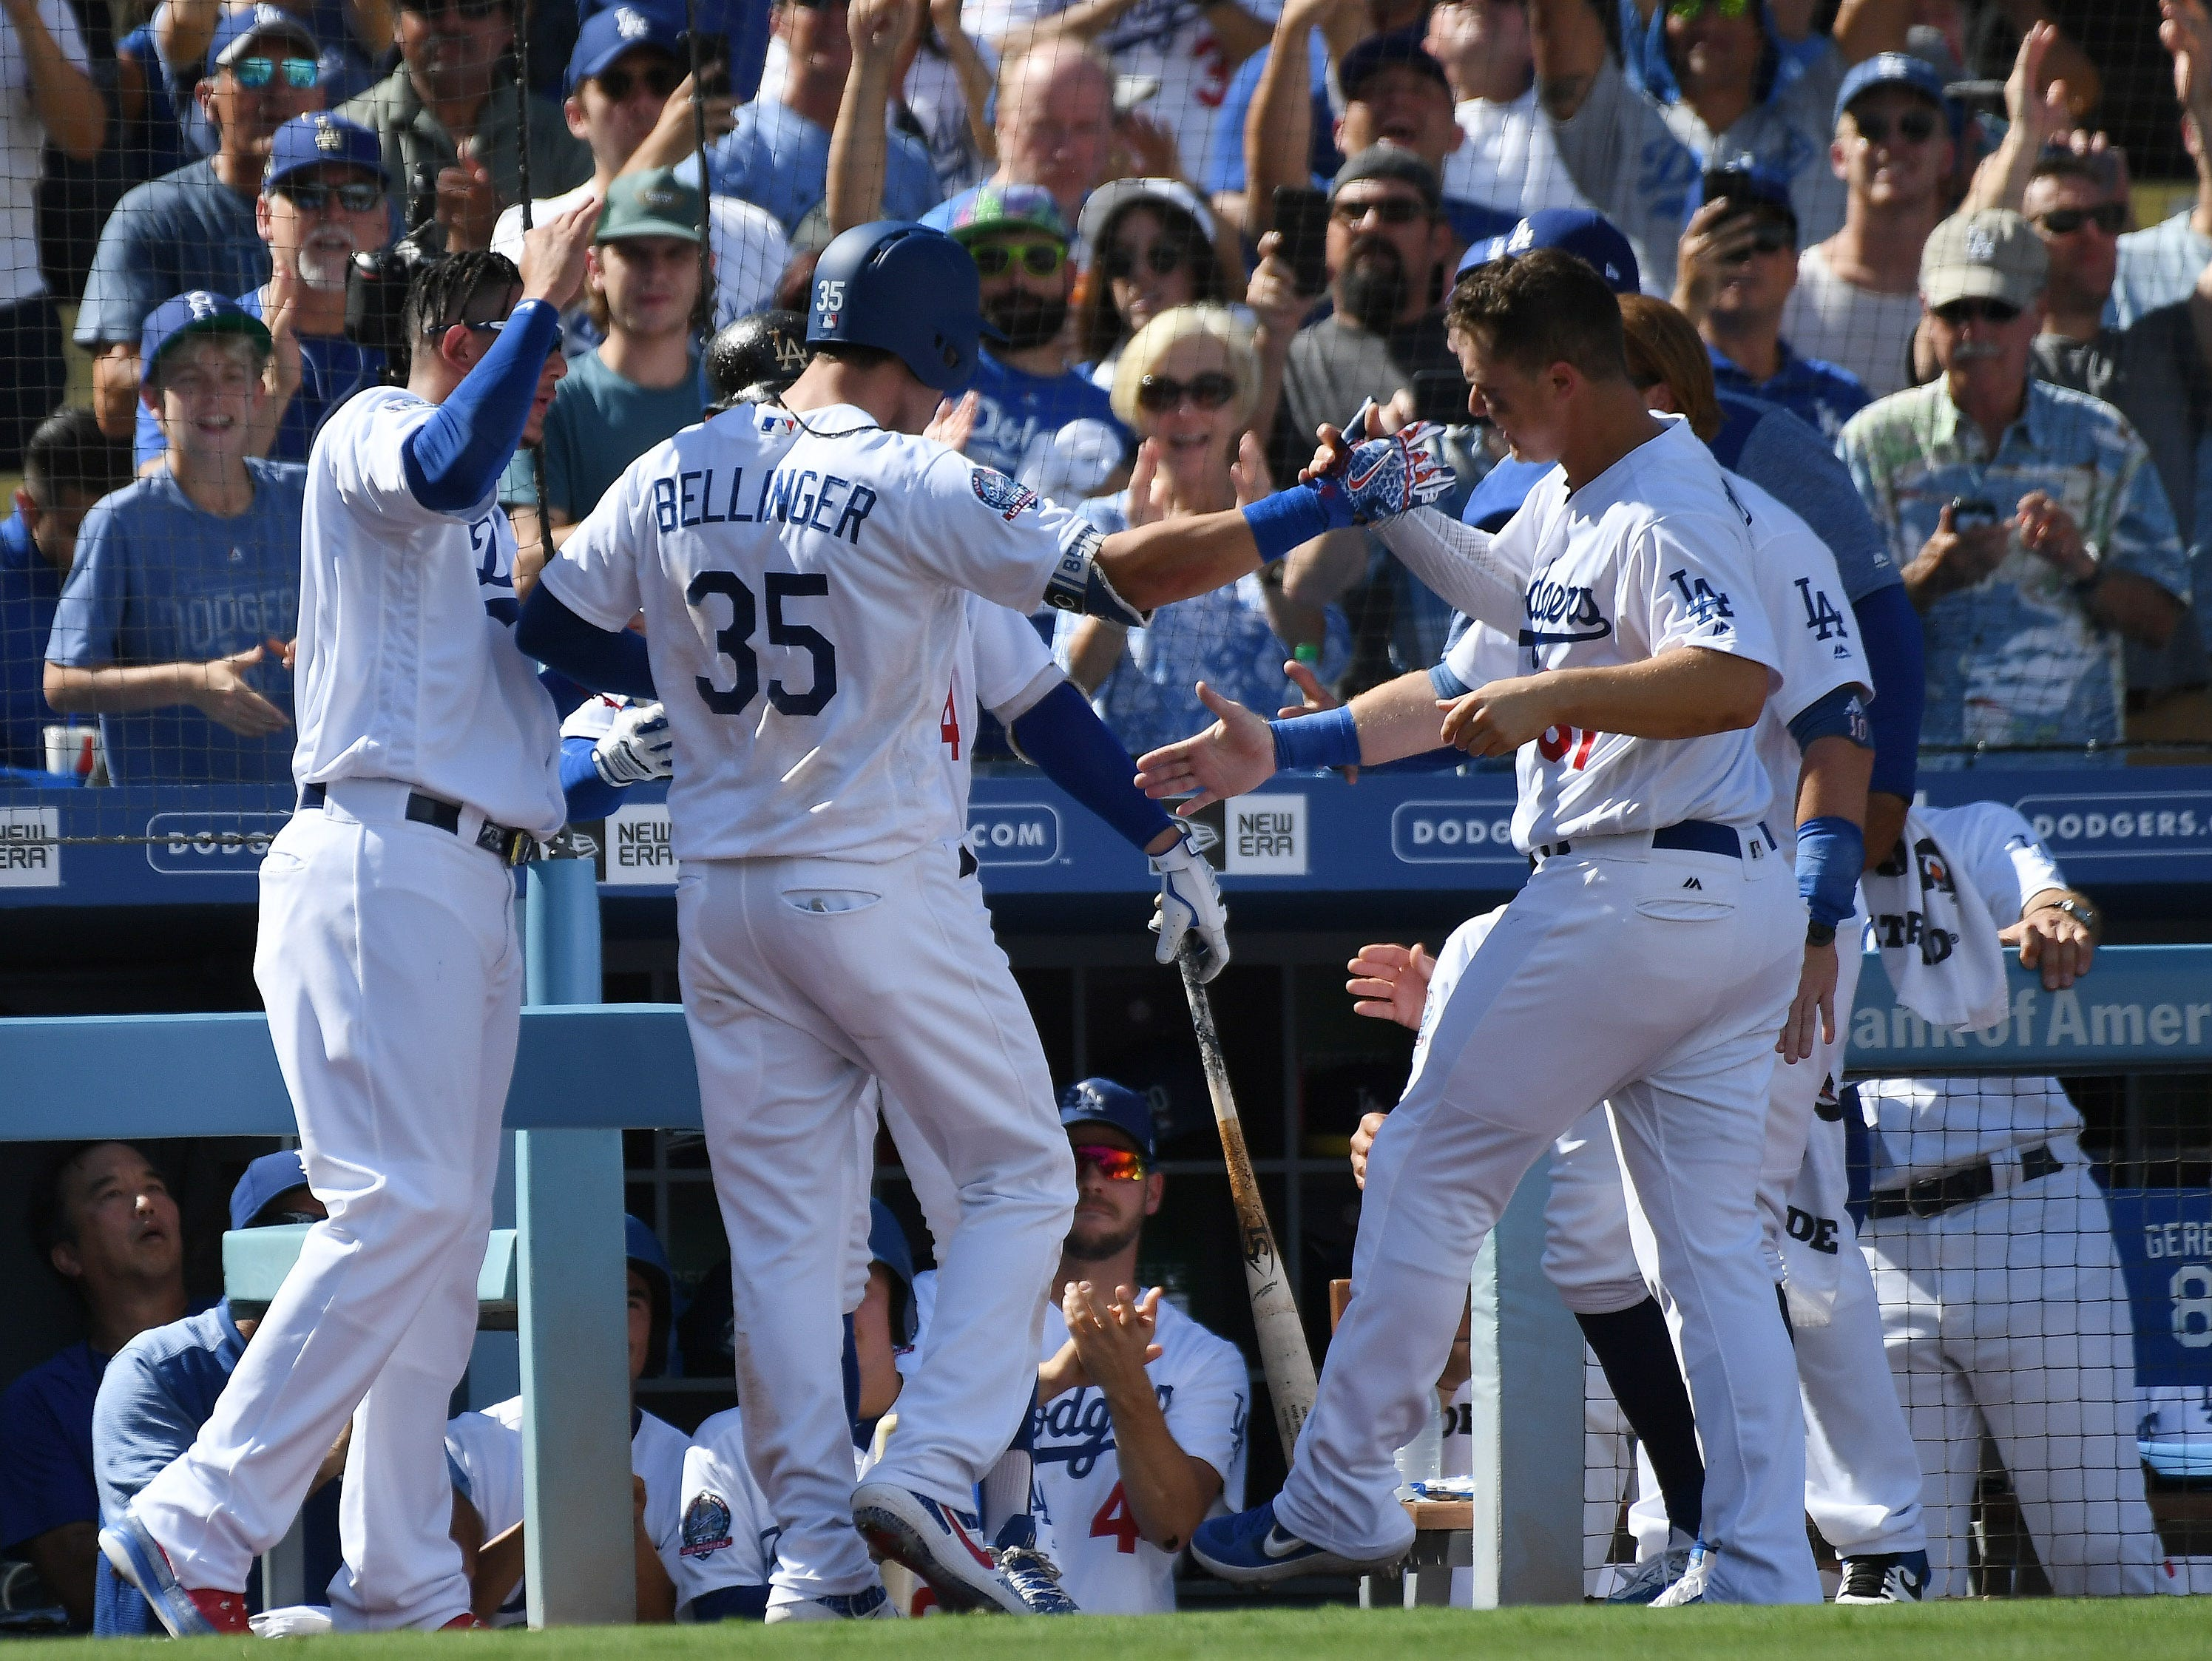 Dodgers players celebrate Cody Bellinger's two-run homer in the fourth inning.